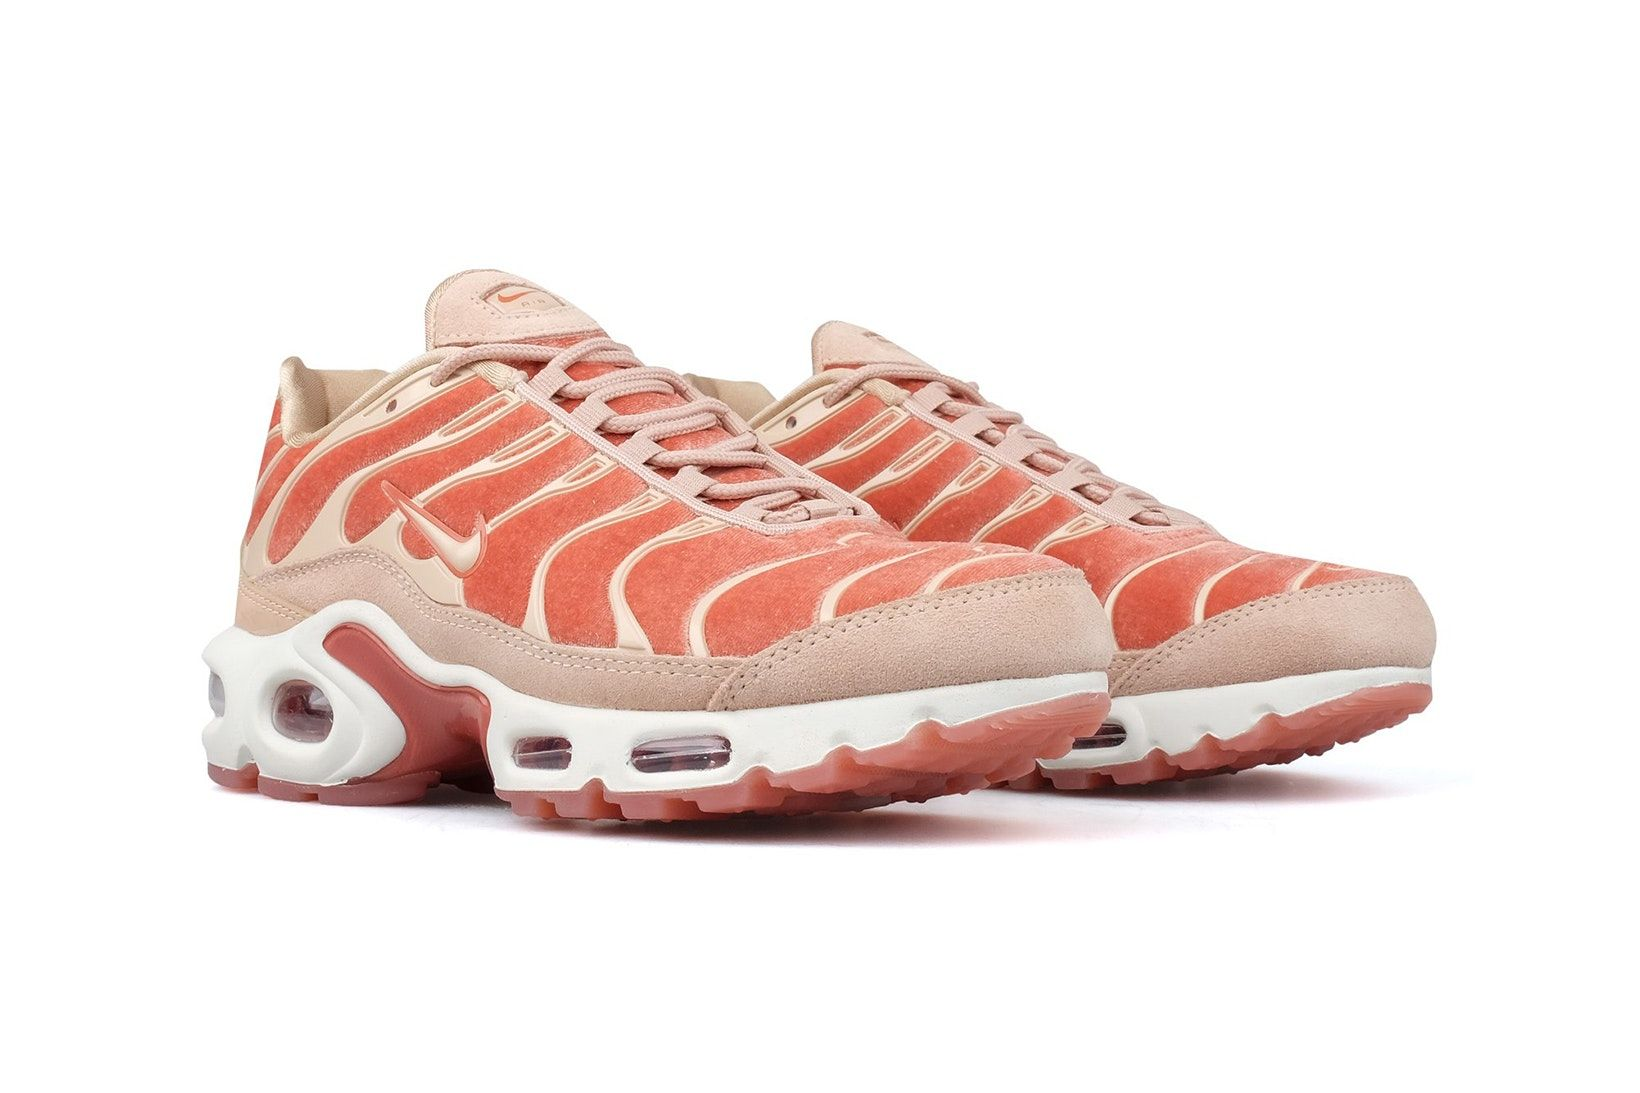 nike air max e lx dusty peach velvet pastello lux no sintonizzati retrò